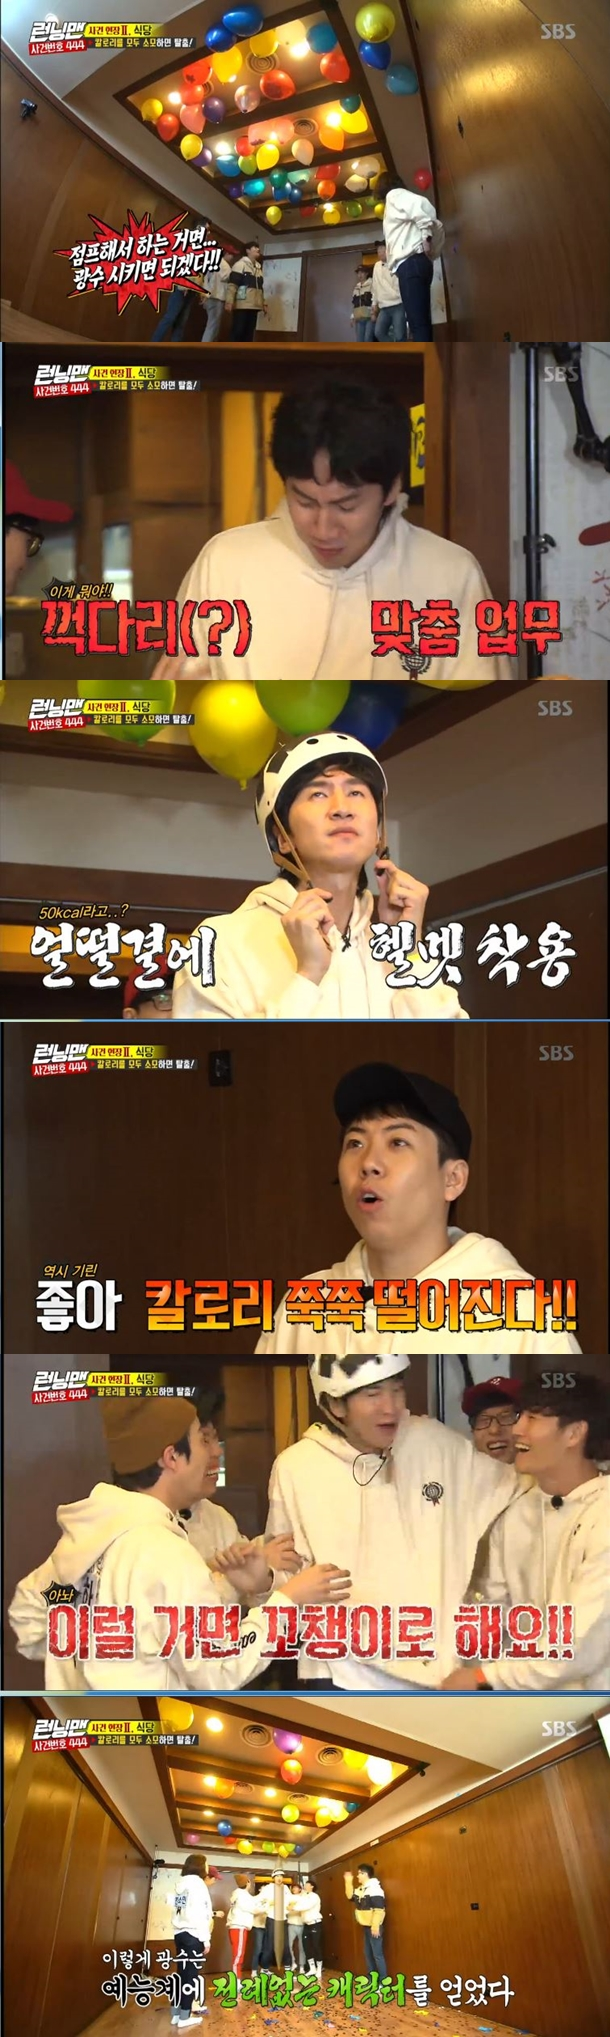 <p>Lee Kwang-soo with an unprecedented art Character got.</p><p>24 days afternoon broadcast SBS TV Running Manin the number 444, this meant that of the incident centered on the members of escape the room game that came out.</p><p>Supporting the call to death the criminal in order to catch the window and escape from members towards where the food was. Thats where the octopus and the duck was placed members of the center and the food they ate.</p><p>Dining on the porch are 169 calories written that the lock is set and members in each room for calories minus the exercise began. The first room from 60 calories to lose a member, they are second in the room on the ceiling, stuck to the balloon and Lee Kwang-soo was called.</p><p>Lee Kwang-soo is a member of their own to compliment the user wearing a helmet alone in the ceiling balloon 50 to pop challenge. But after Kim Jong Kook and HaHa seek the help of a balloon to pop was Lee Kwang-soo, if youre just skewers. writea few days complained. But the members are unprecedented for the Character was obtained,said Lee Kwang-soo envy to laugh, I found myself.</p><p>After Lee Kwang-soo is to their advantage to lay on ceiling balloon 50 both burst.</p>